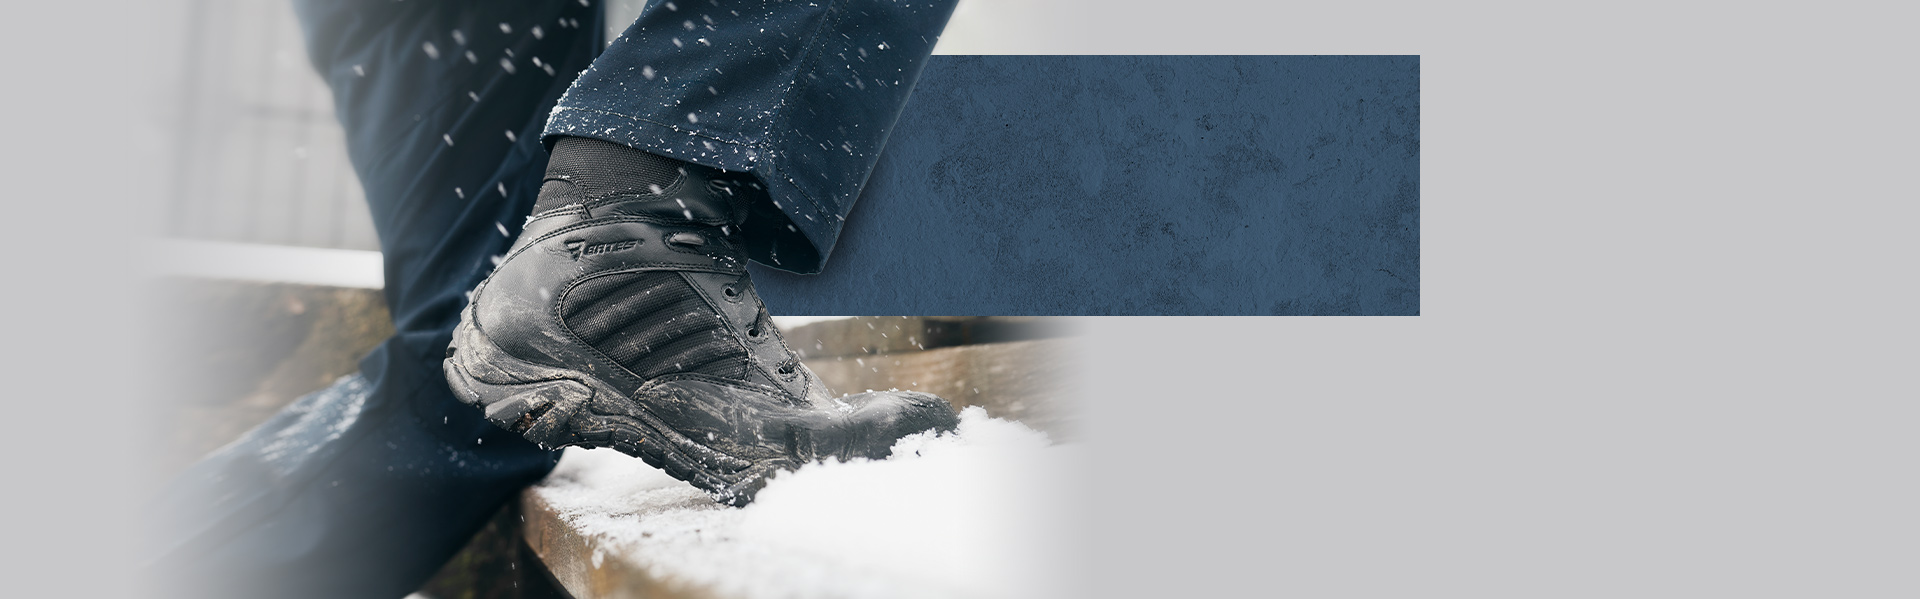 GX8 boots climbing snow-covered steps.